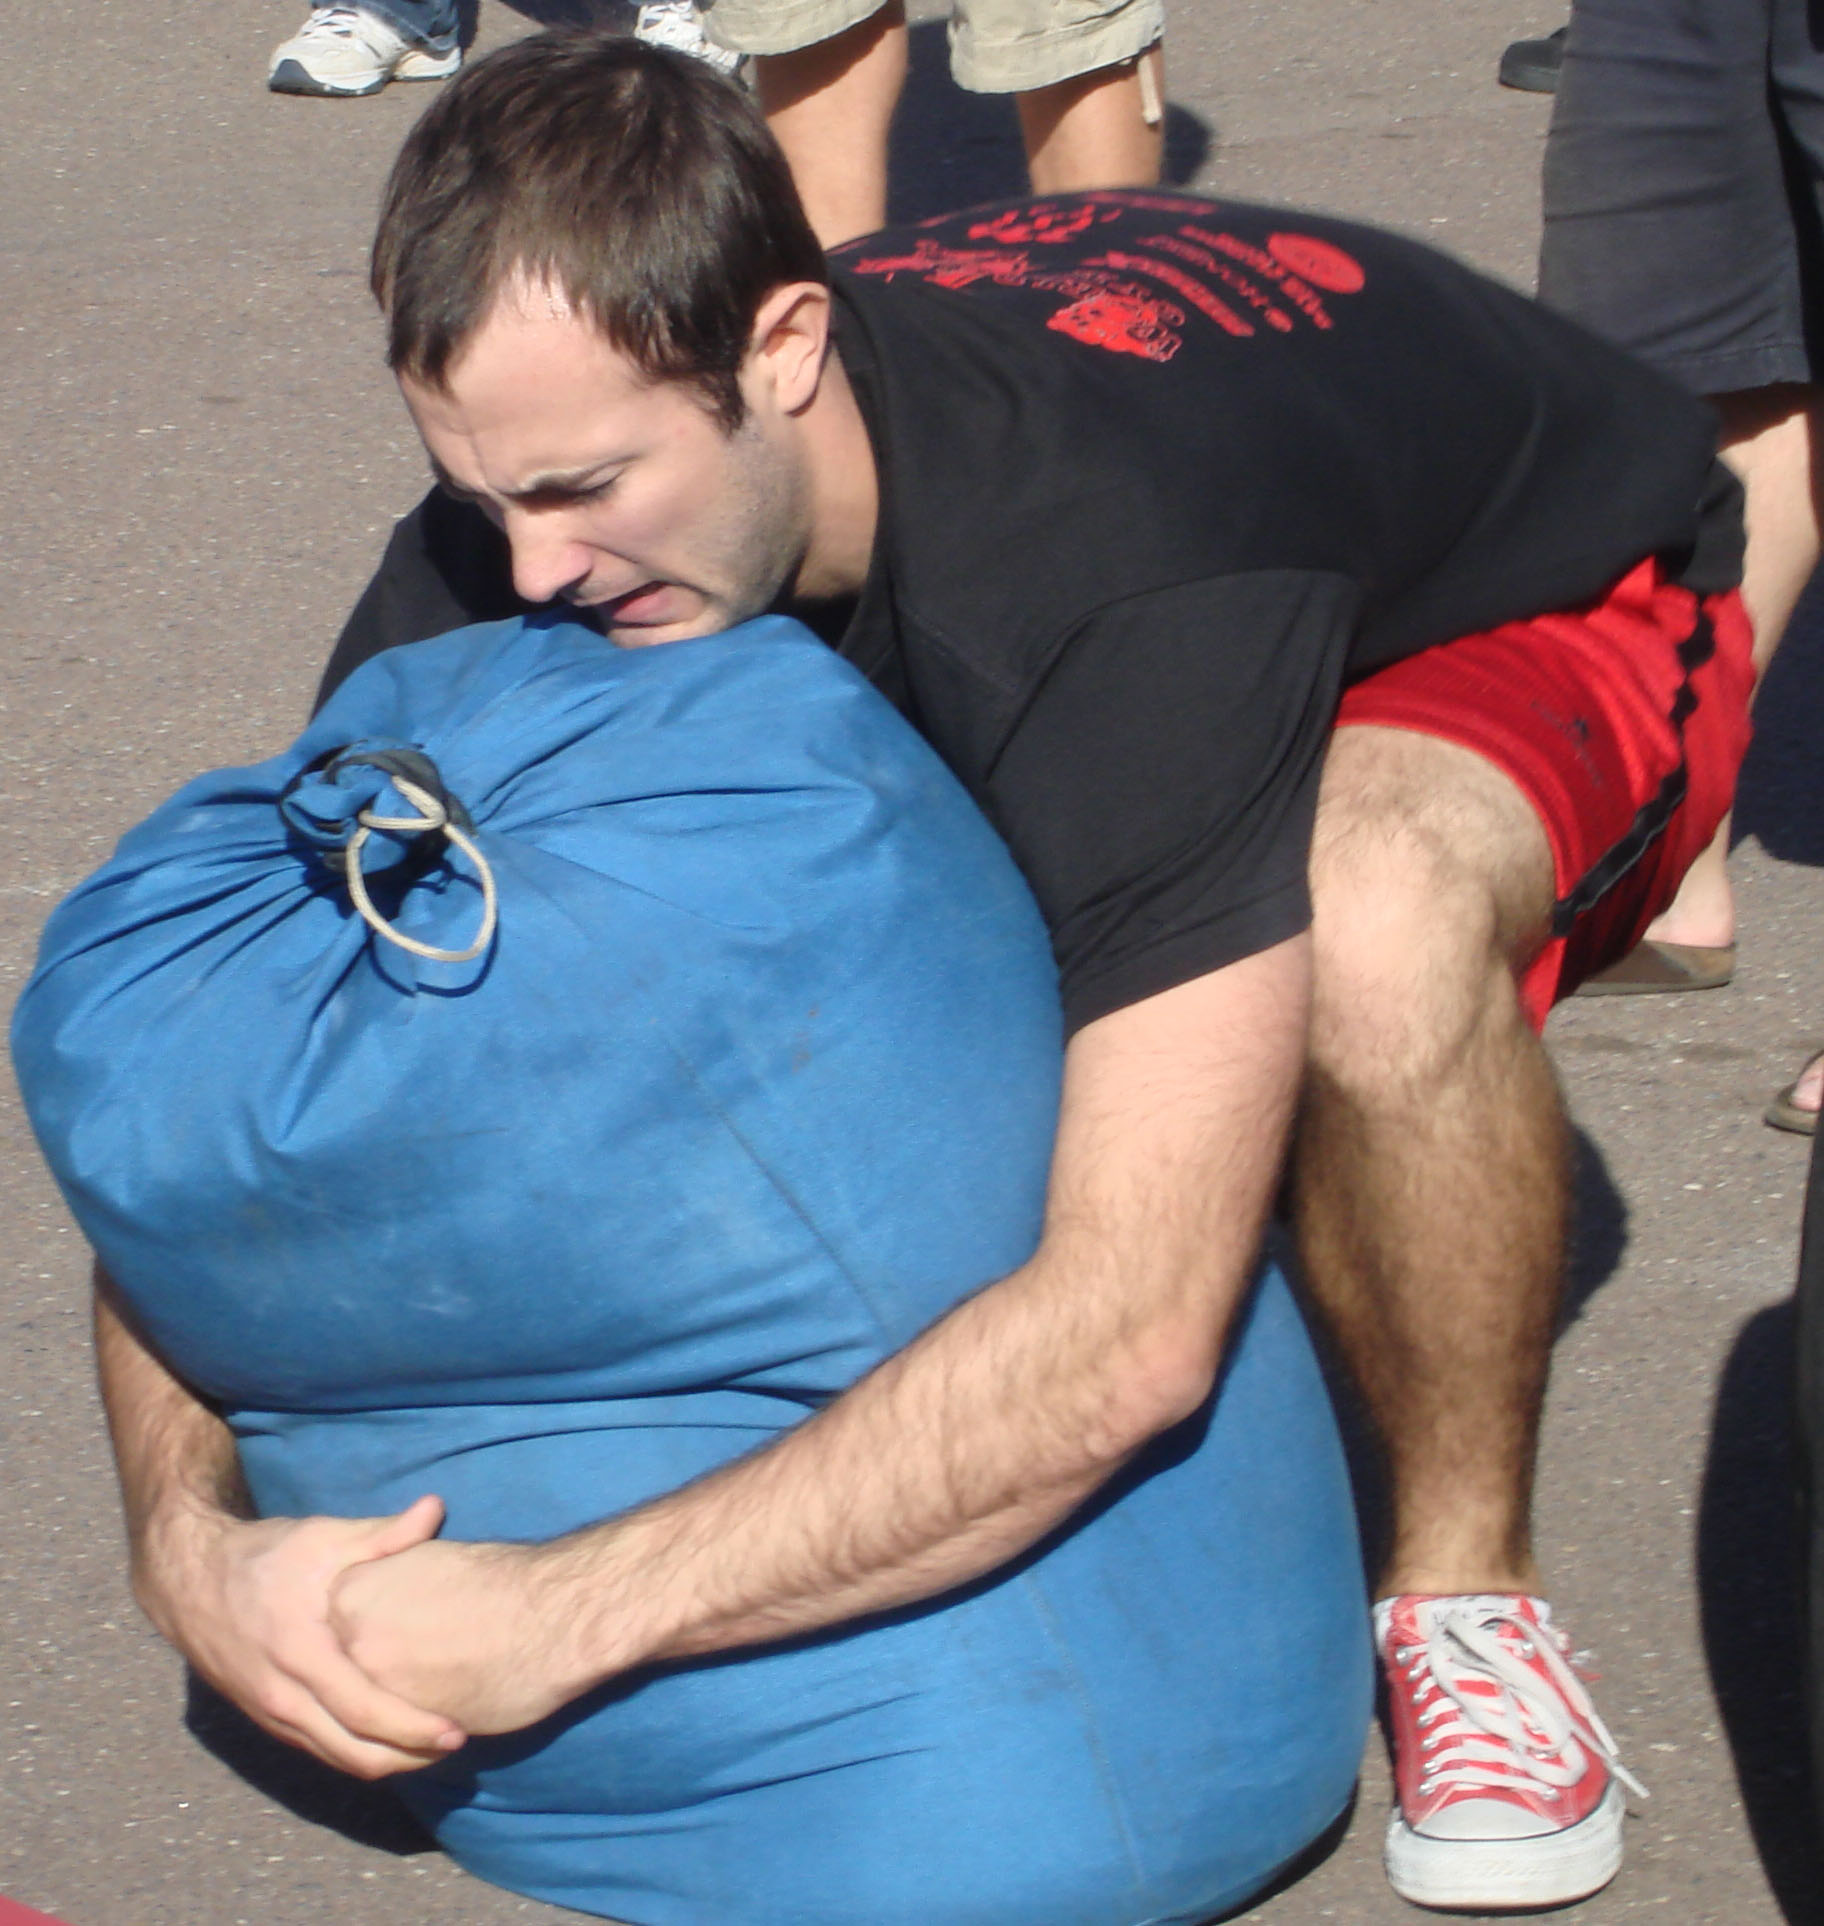 San Diego personal trainer, Brian Tabor, picks up a large sandbag without handles in a strongman competition.